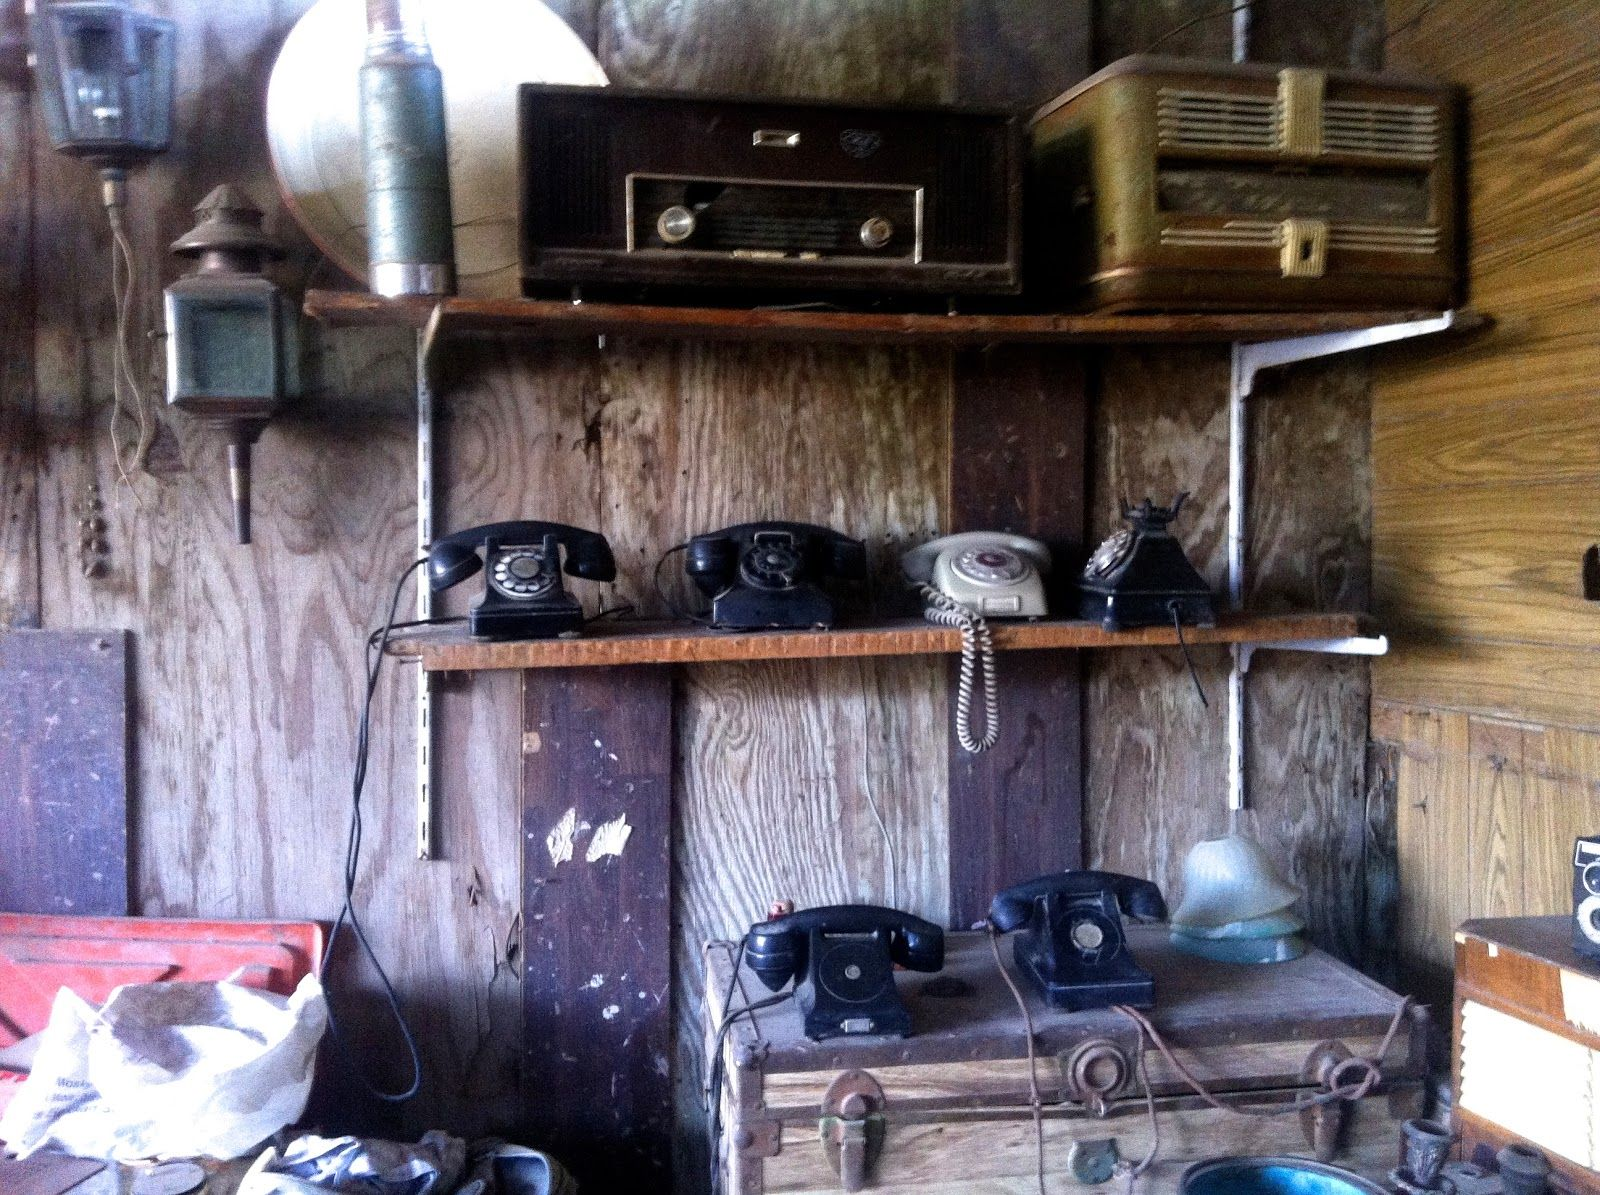 Old telephones and radios